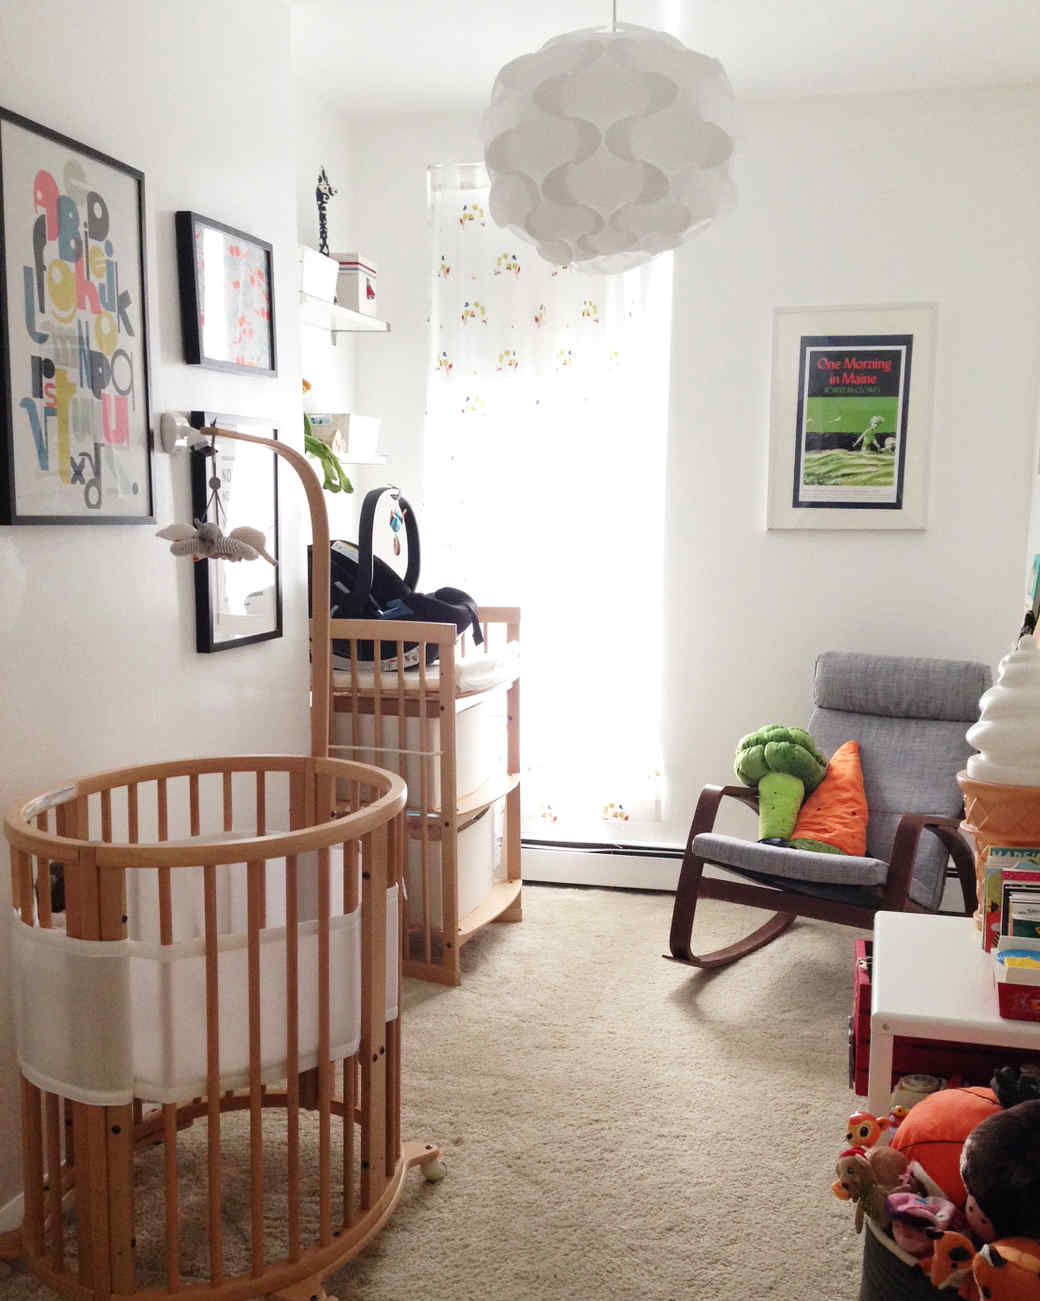 Marvelous From Storage Space To Cozy Baby Nursery: See The Before And After Pictures  | Martha Stewart